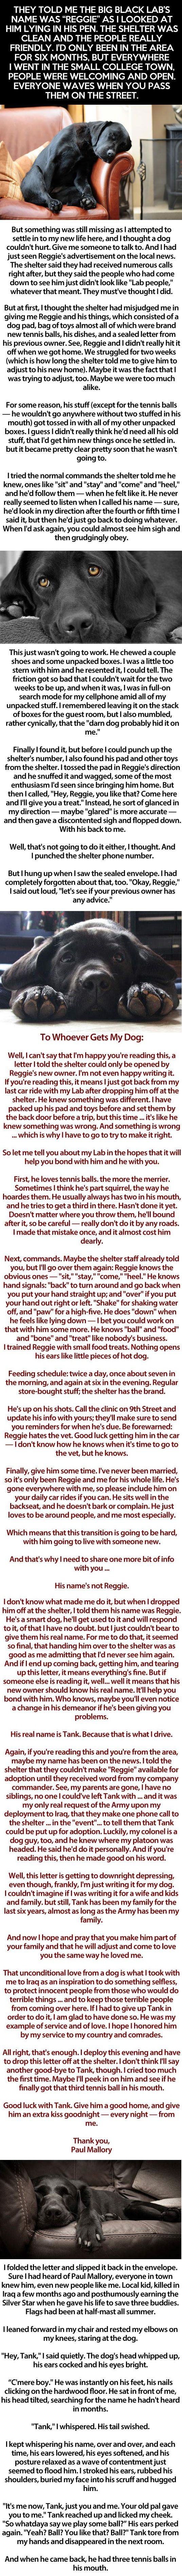 Just melted my heart! It will make you cry, it did me.